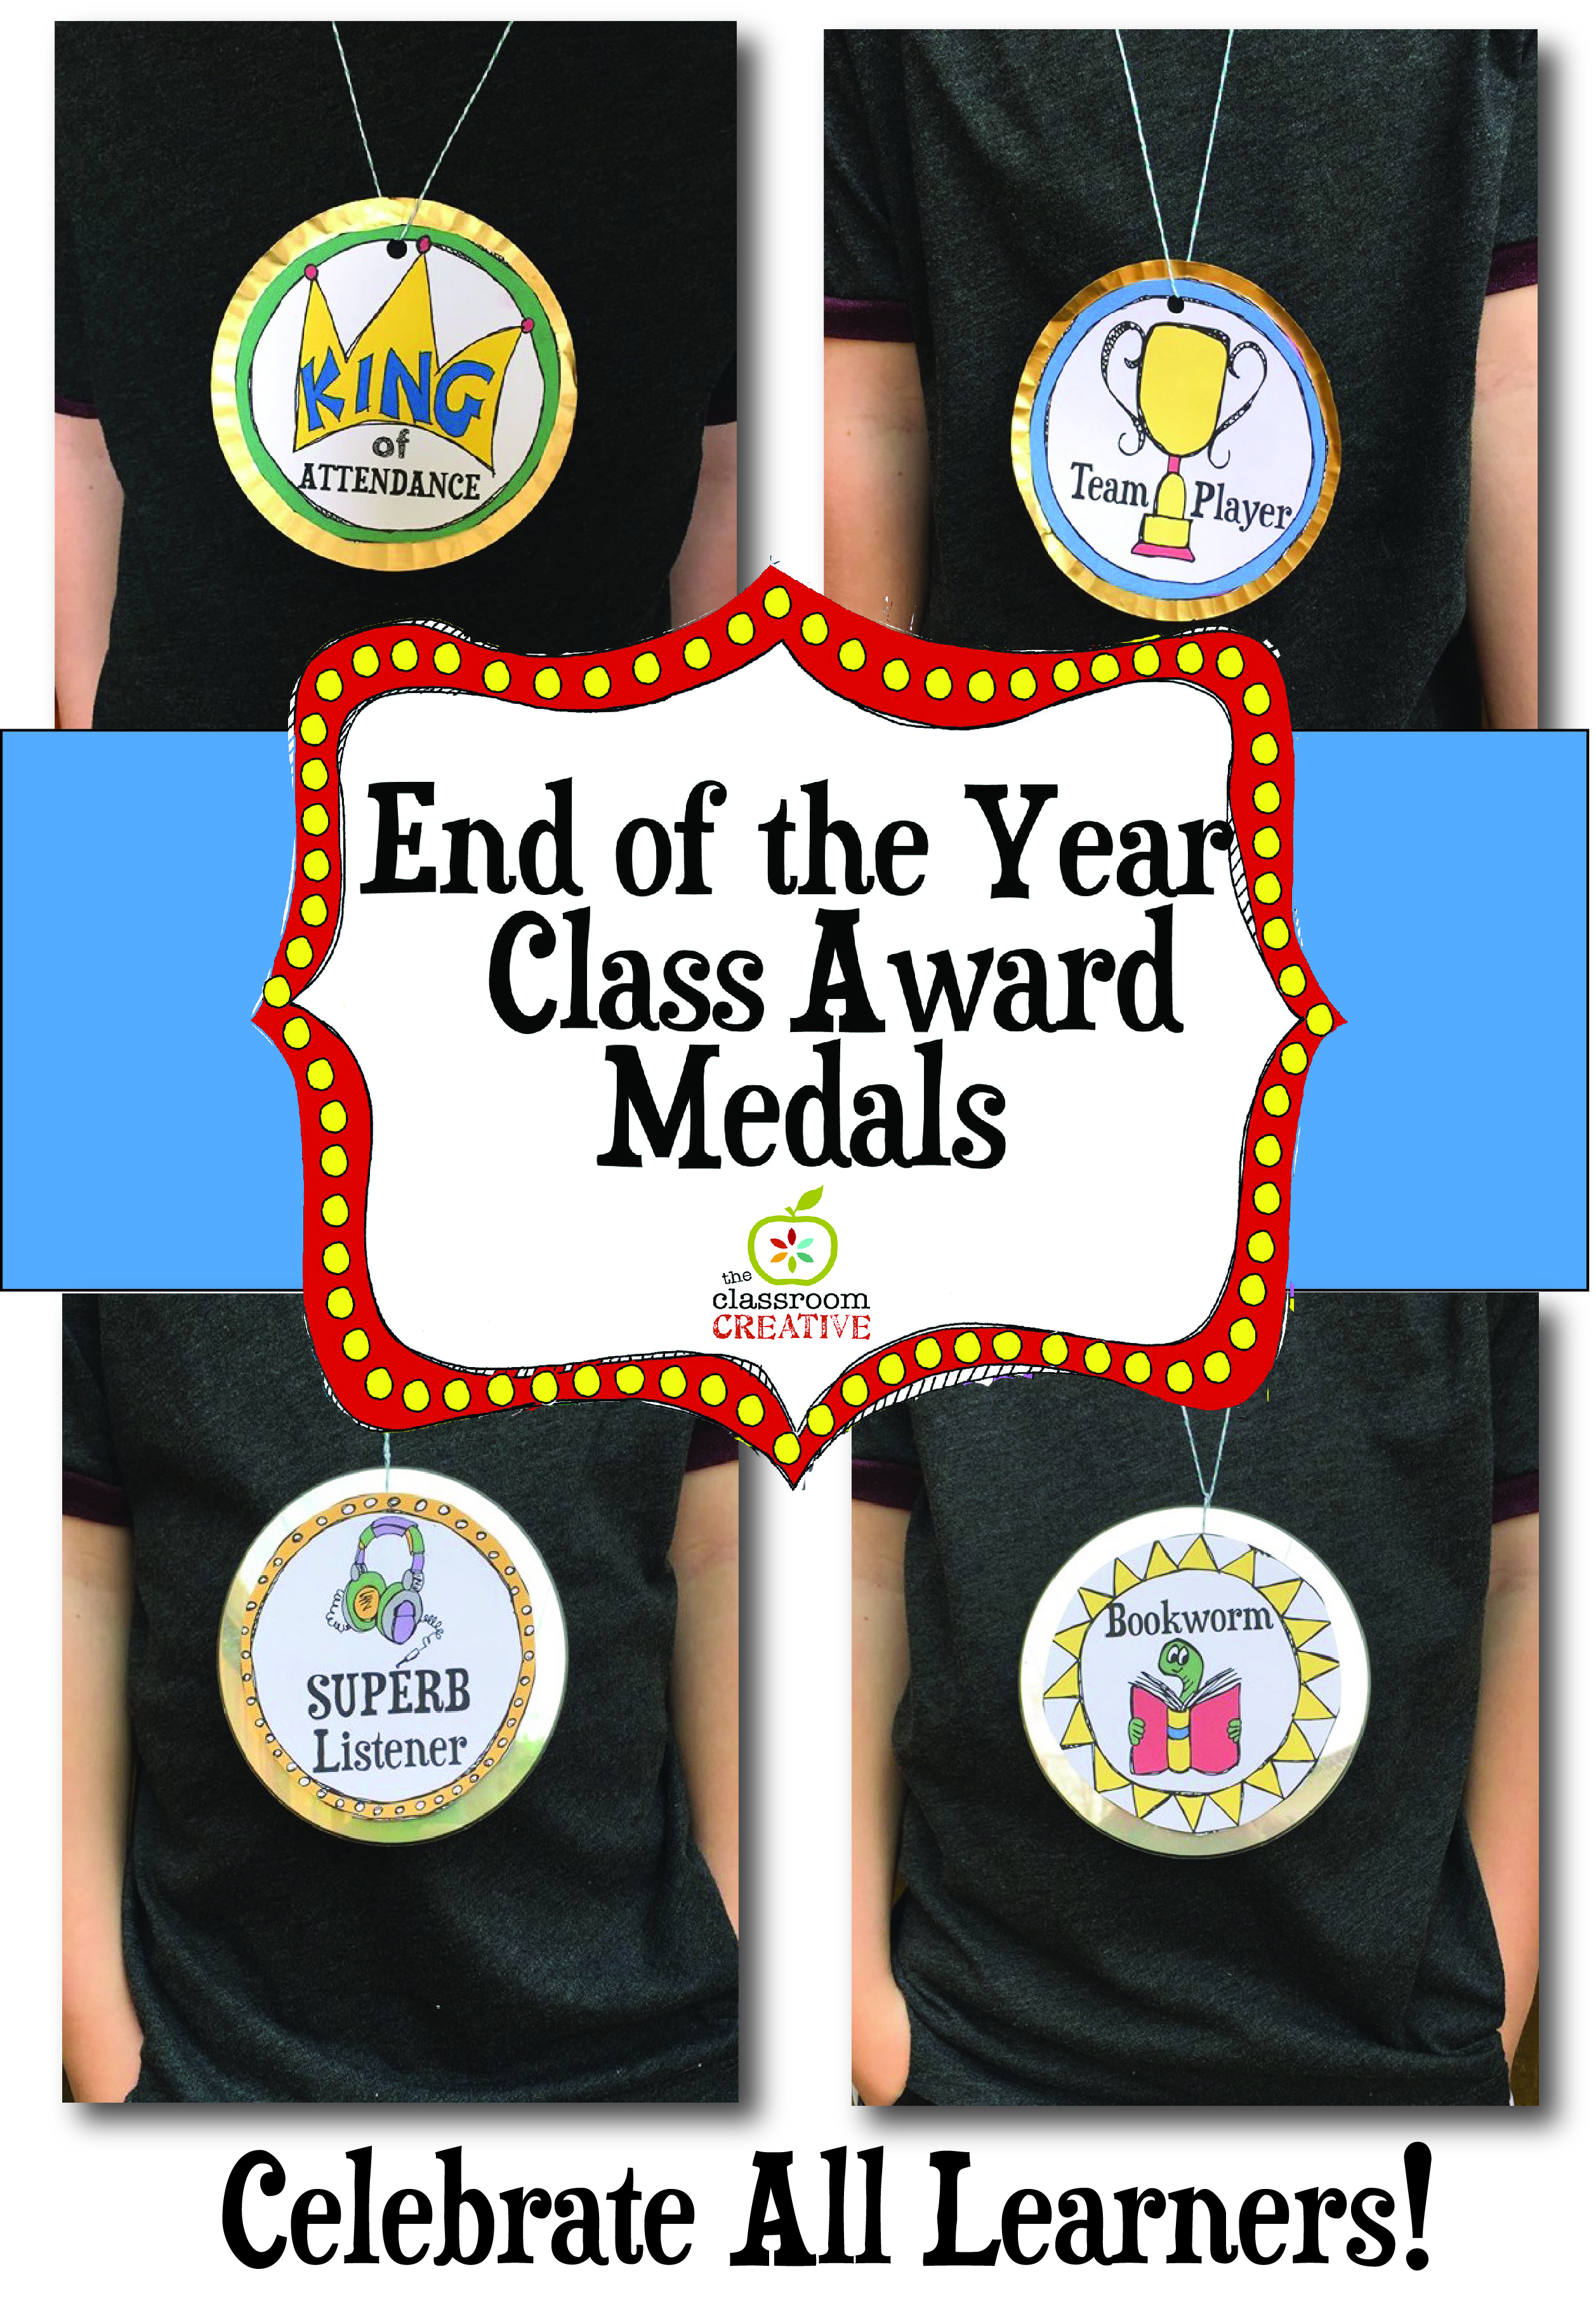 End of the Year Award Medal Ideas